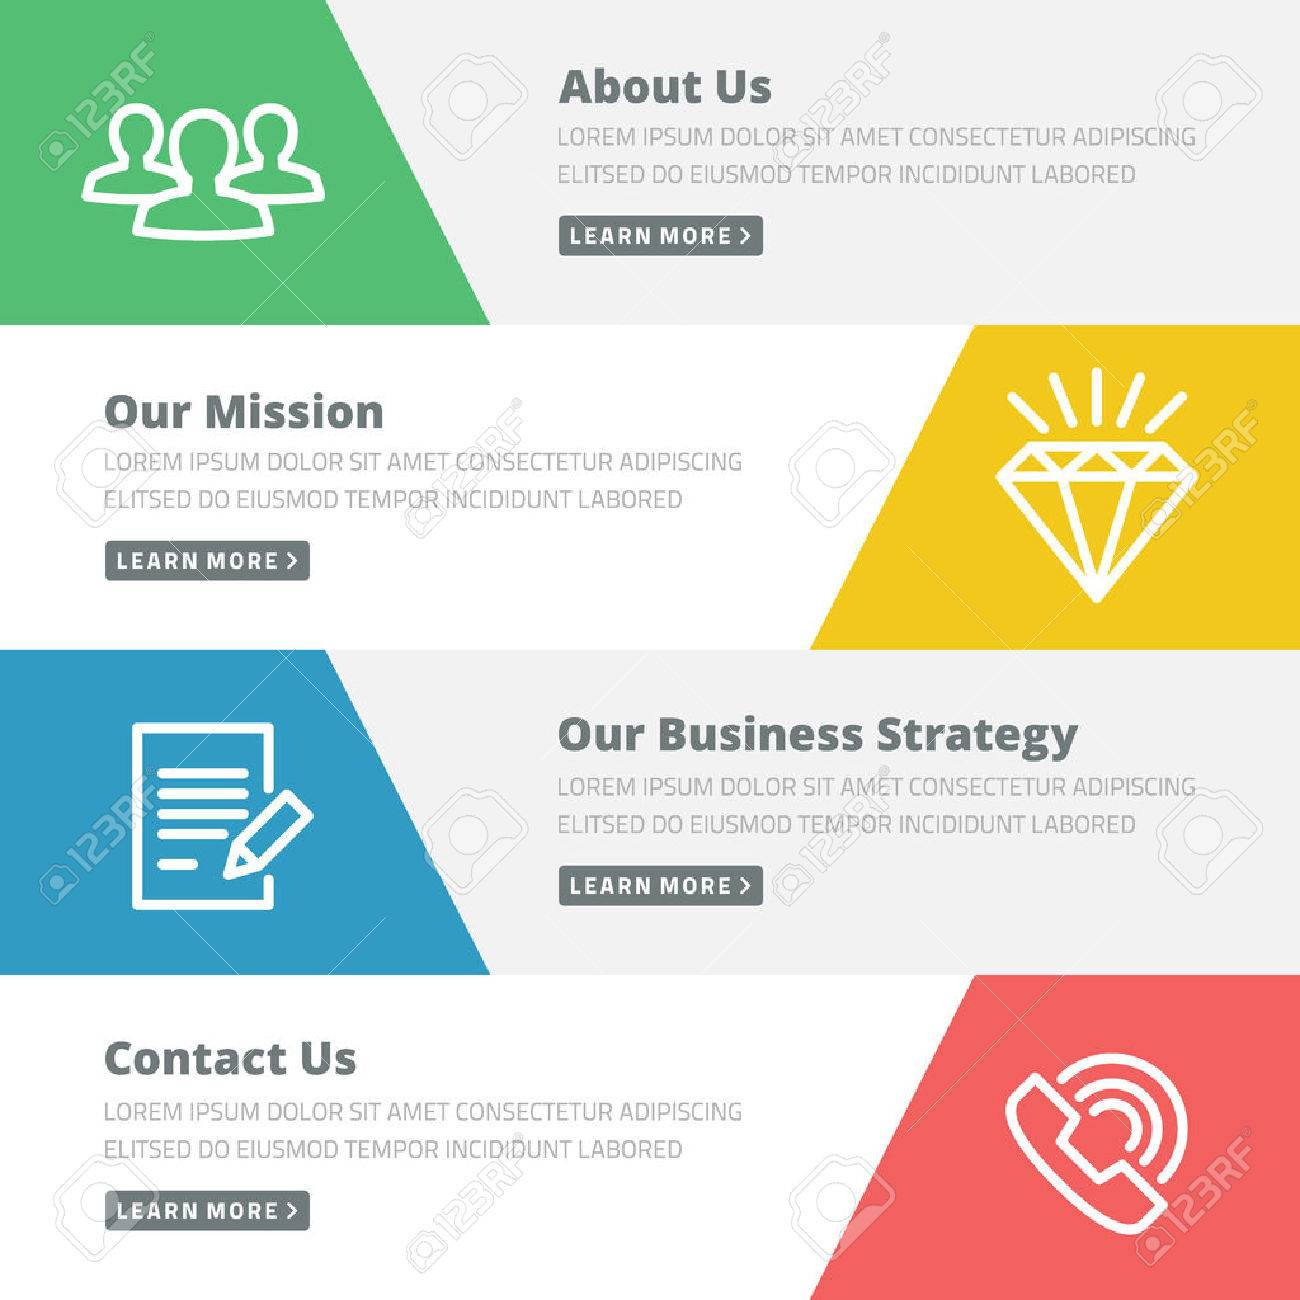 Flat Design Concept For Website Template - About Us, Our Mission ...